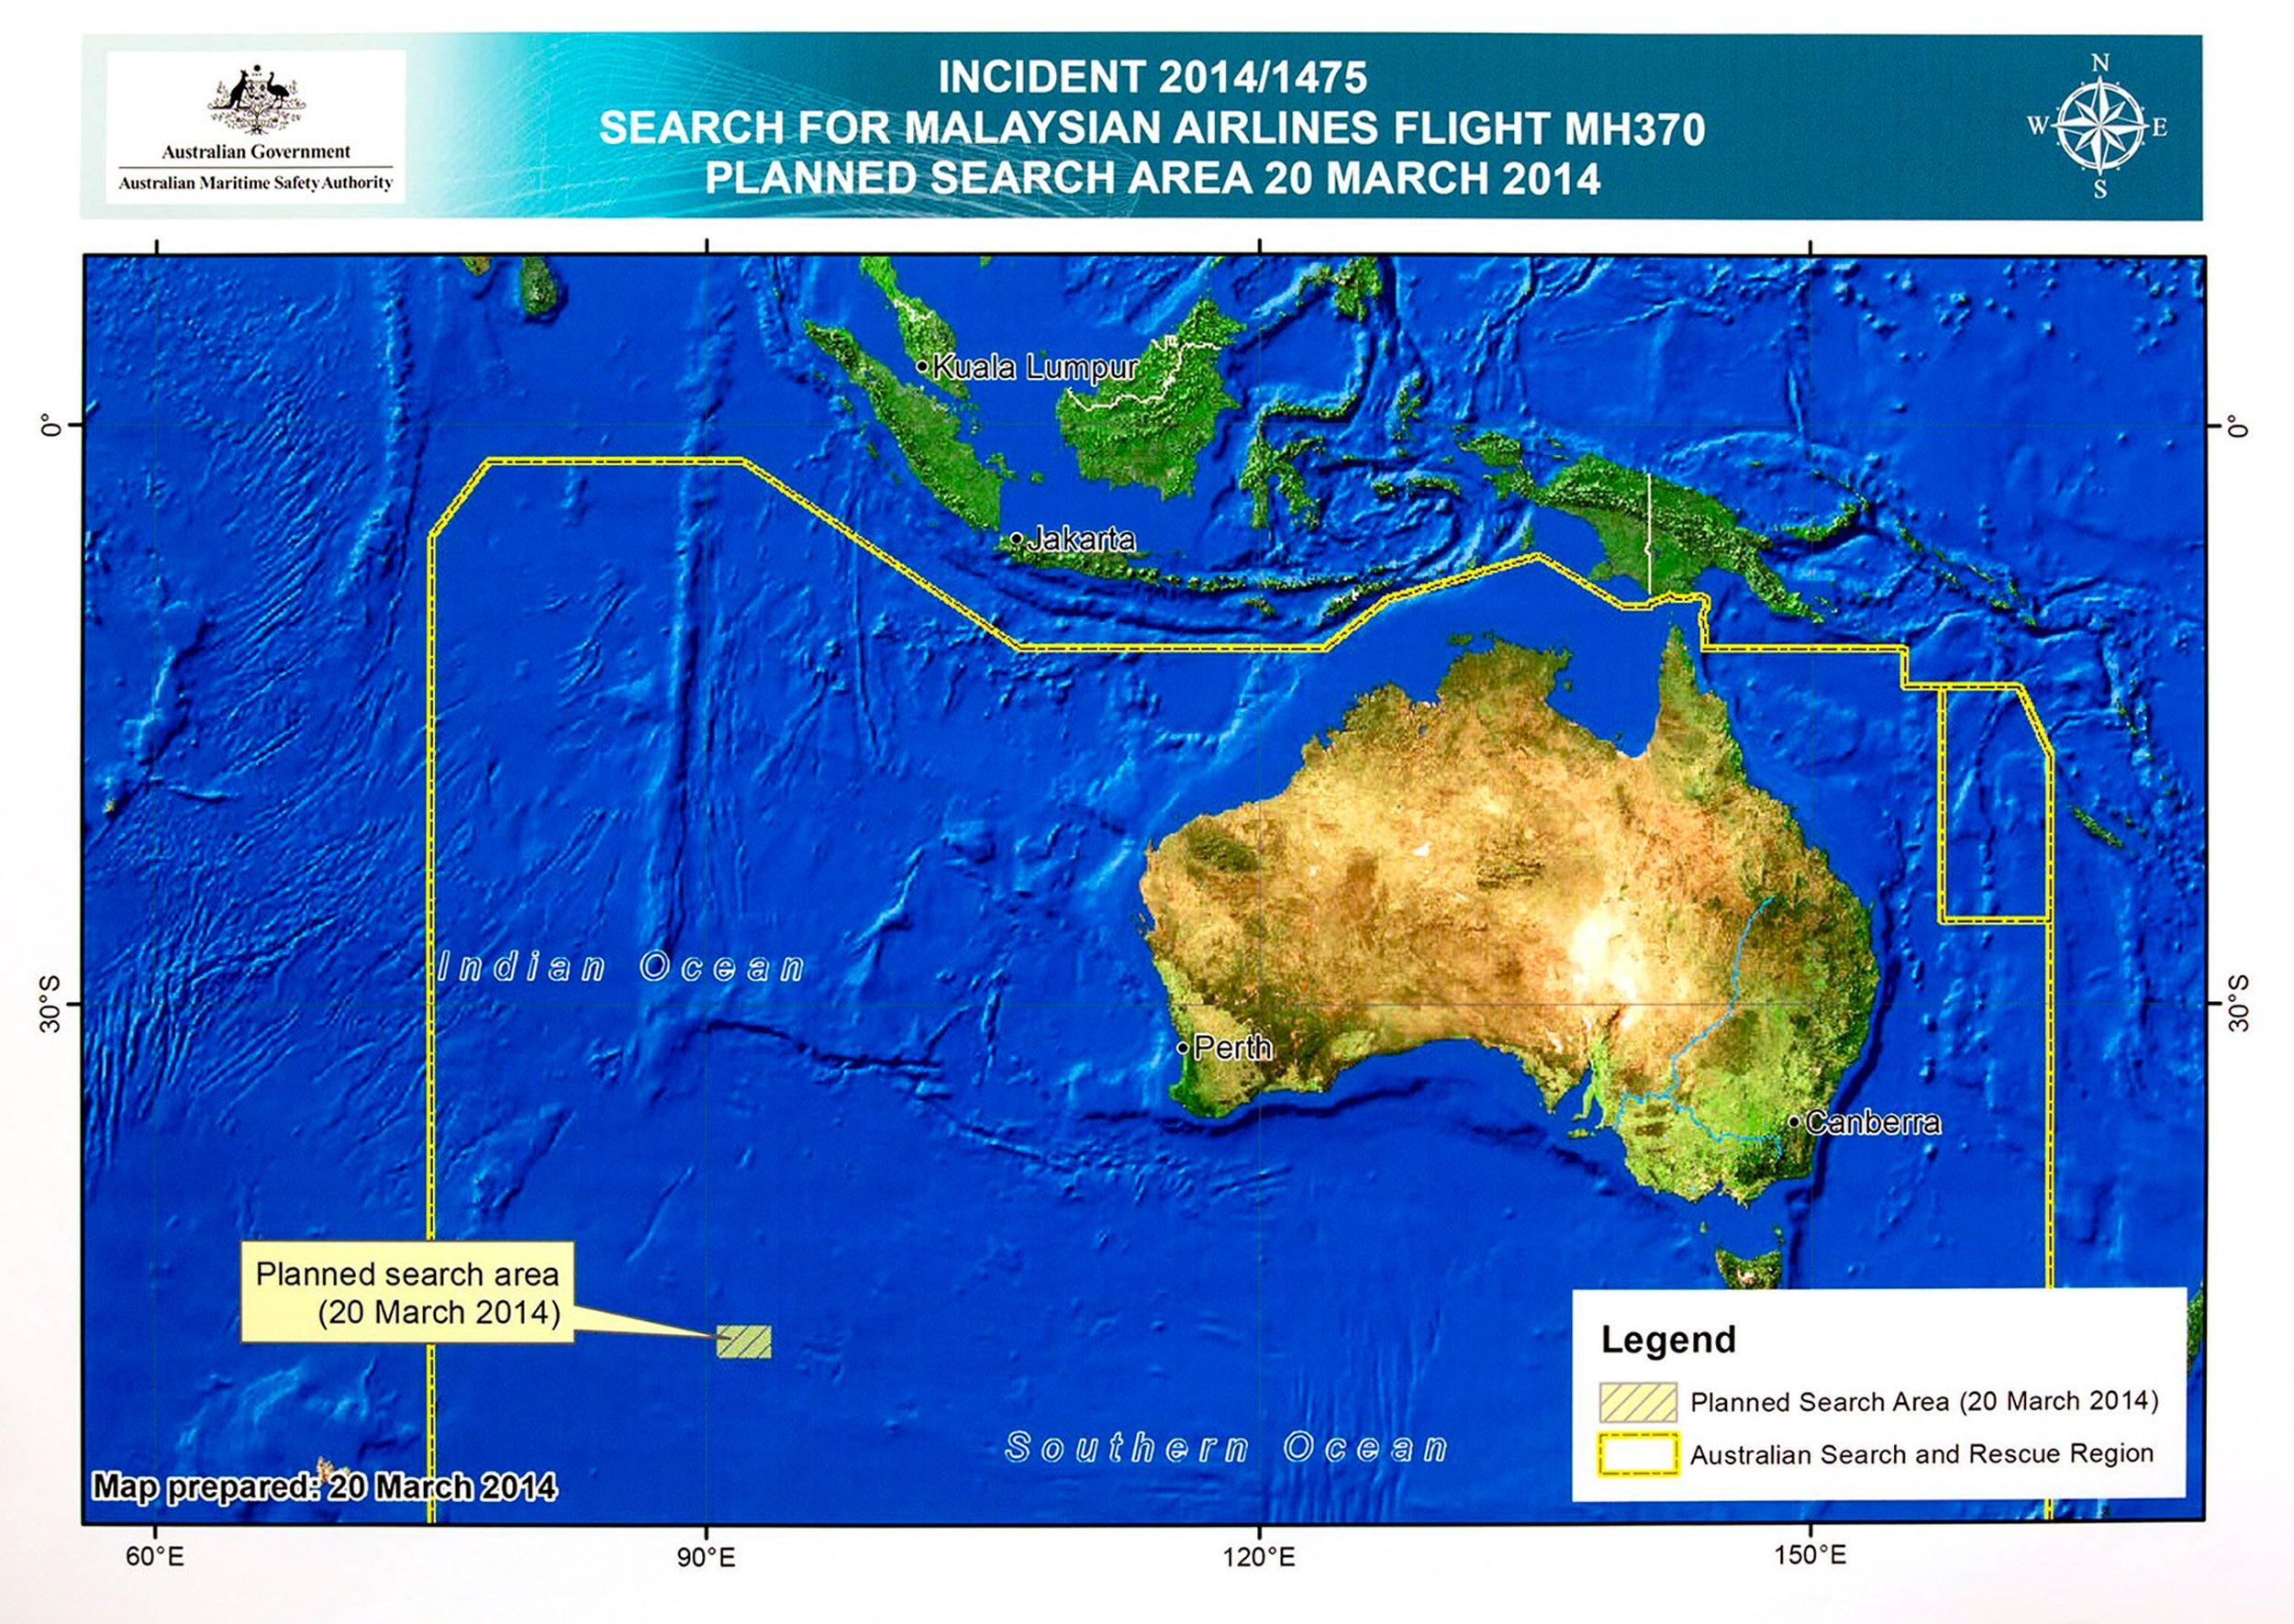 Image: A diagram showing the search area for Malaysia Airlines